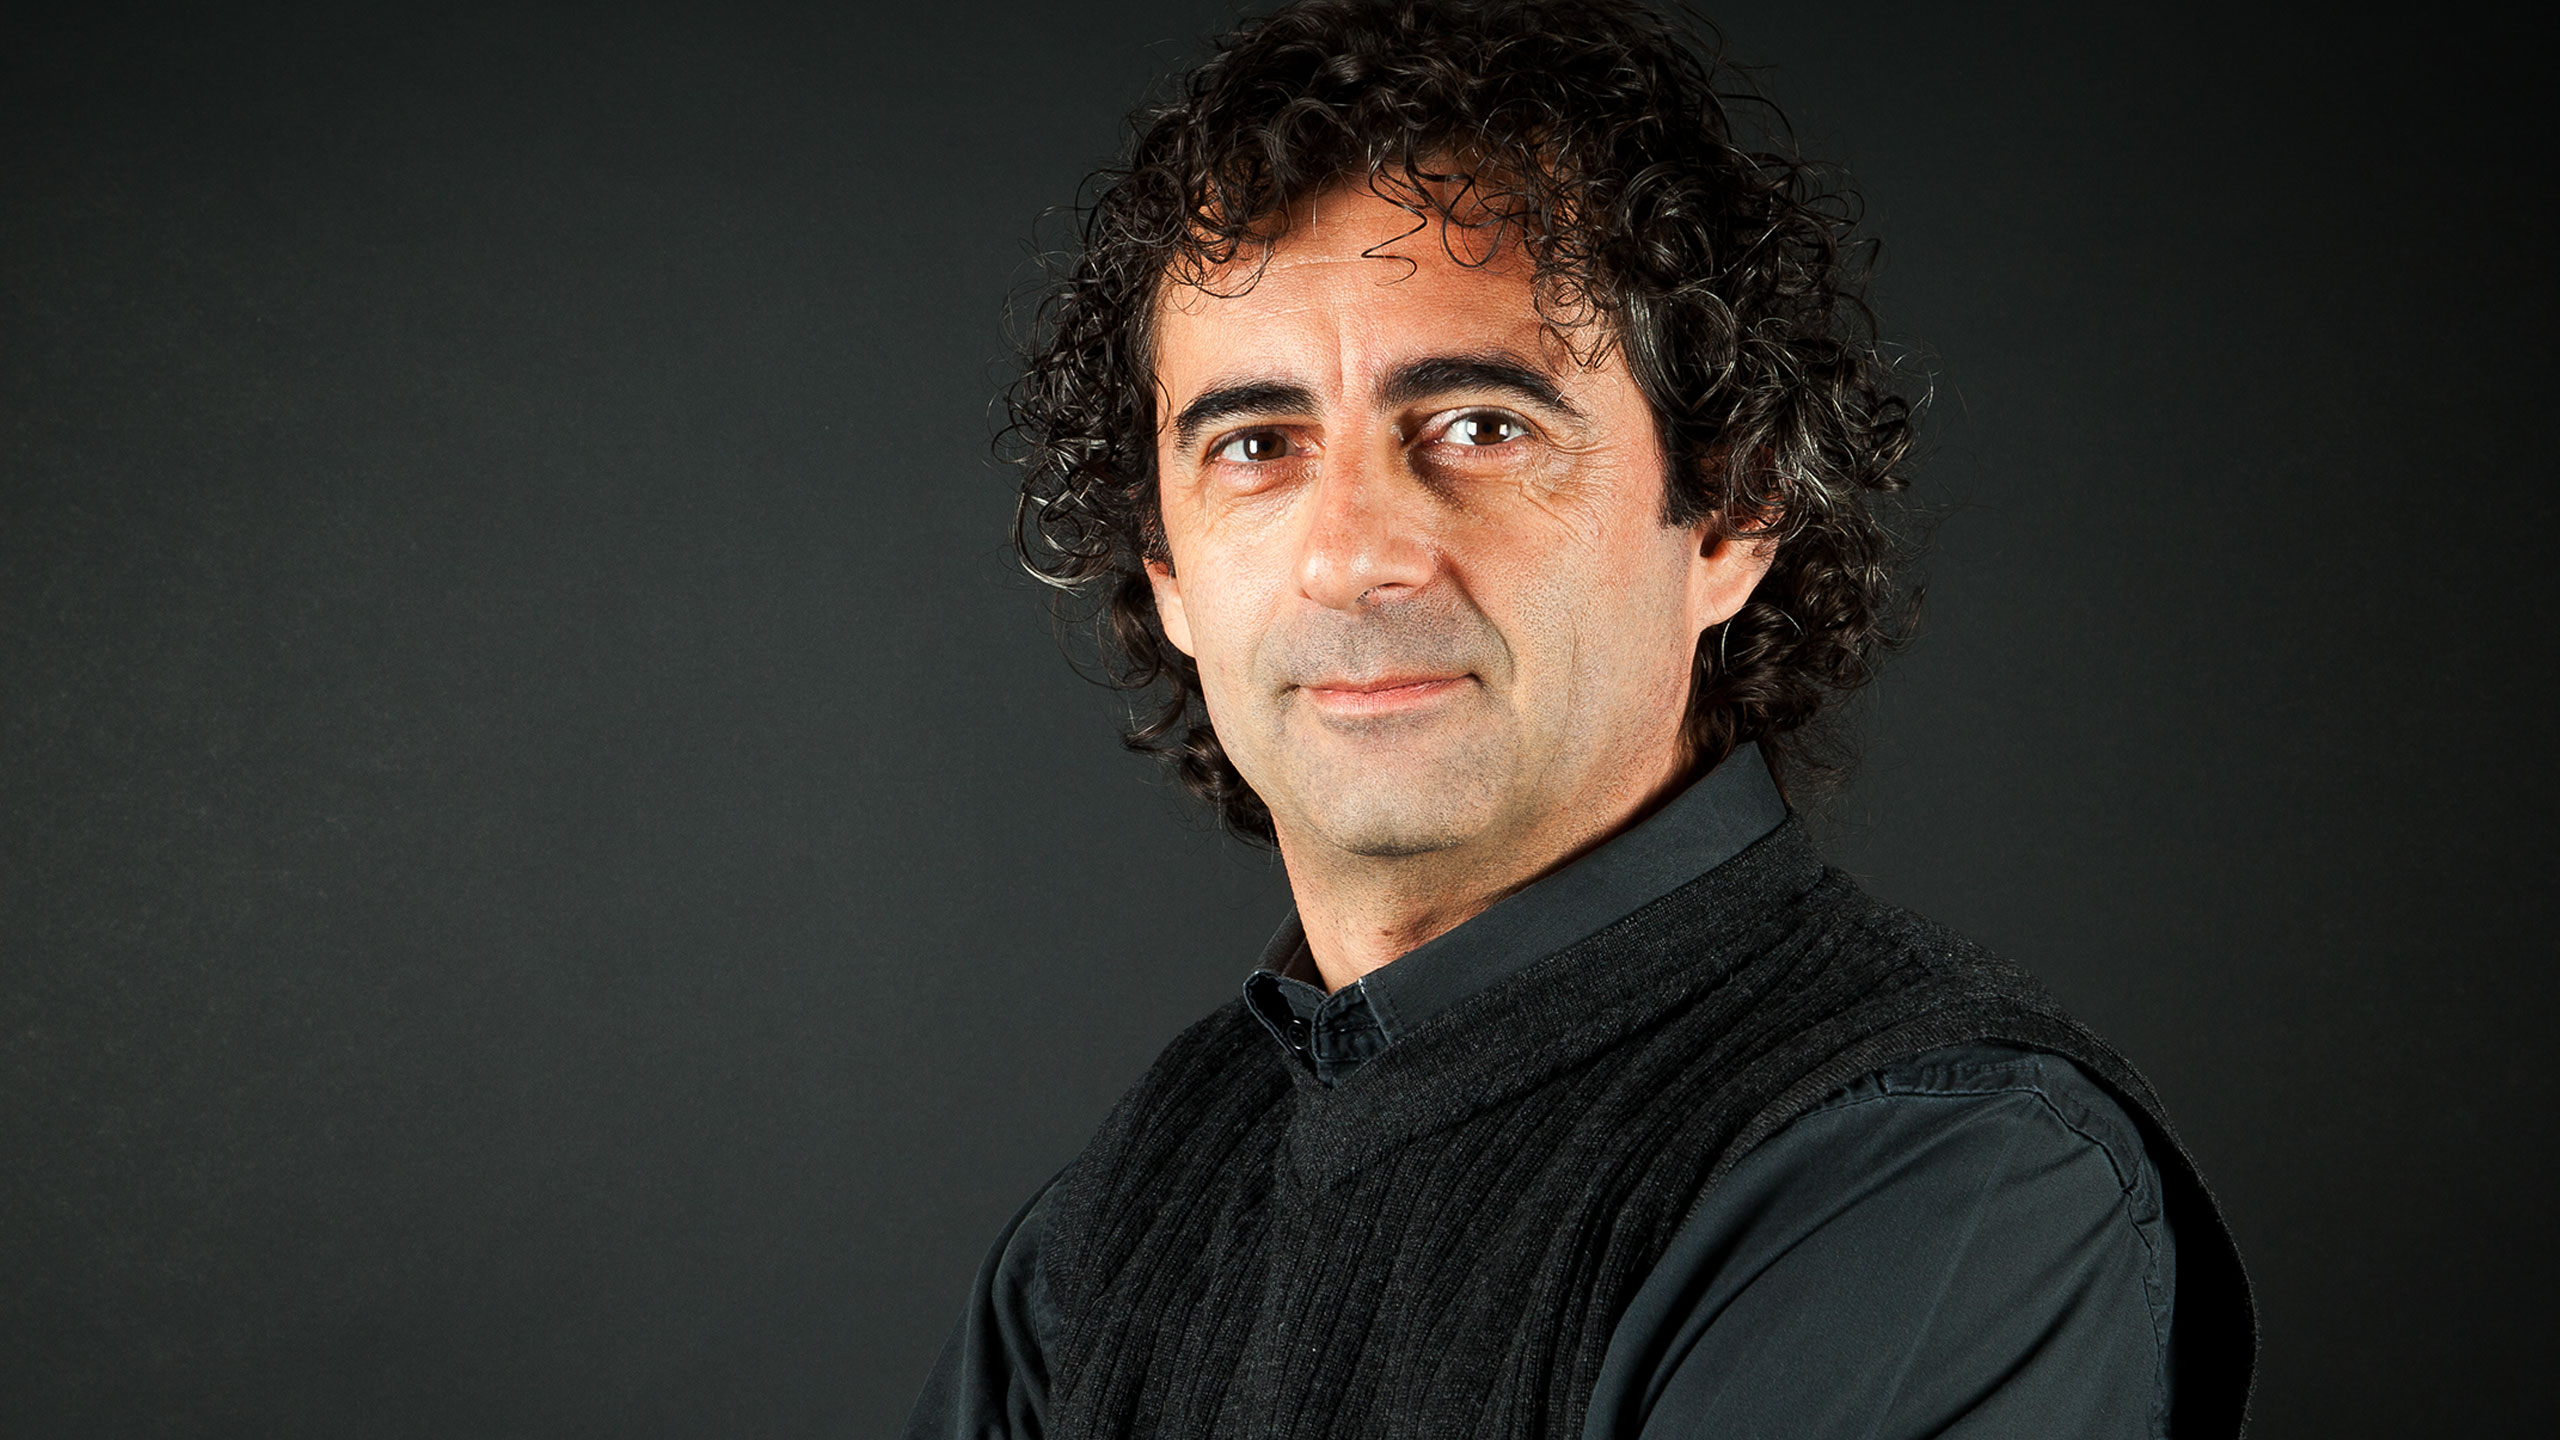 Marco Miana - Commoedia founder